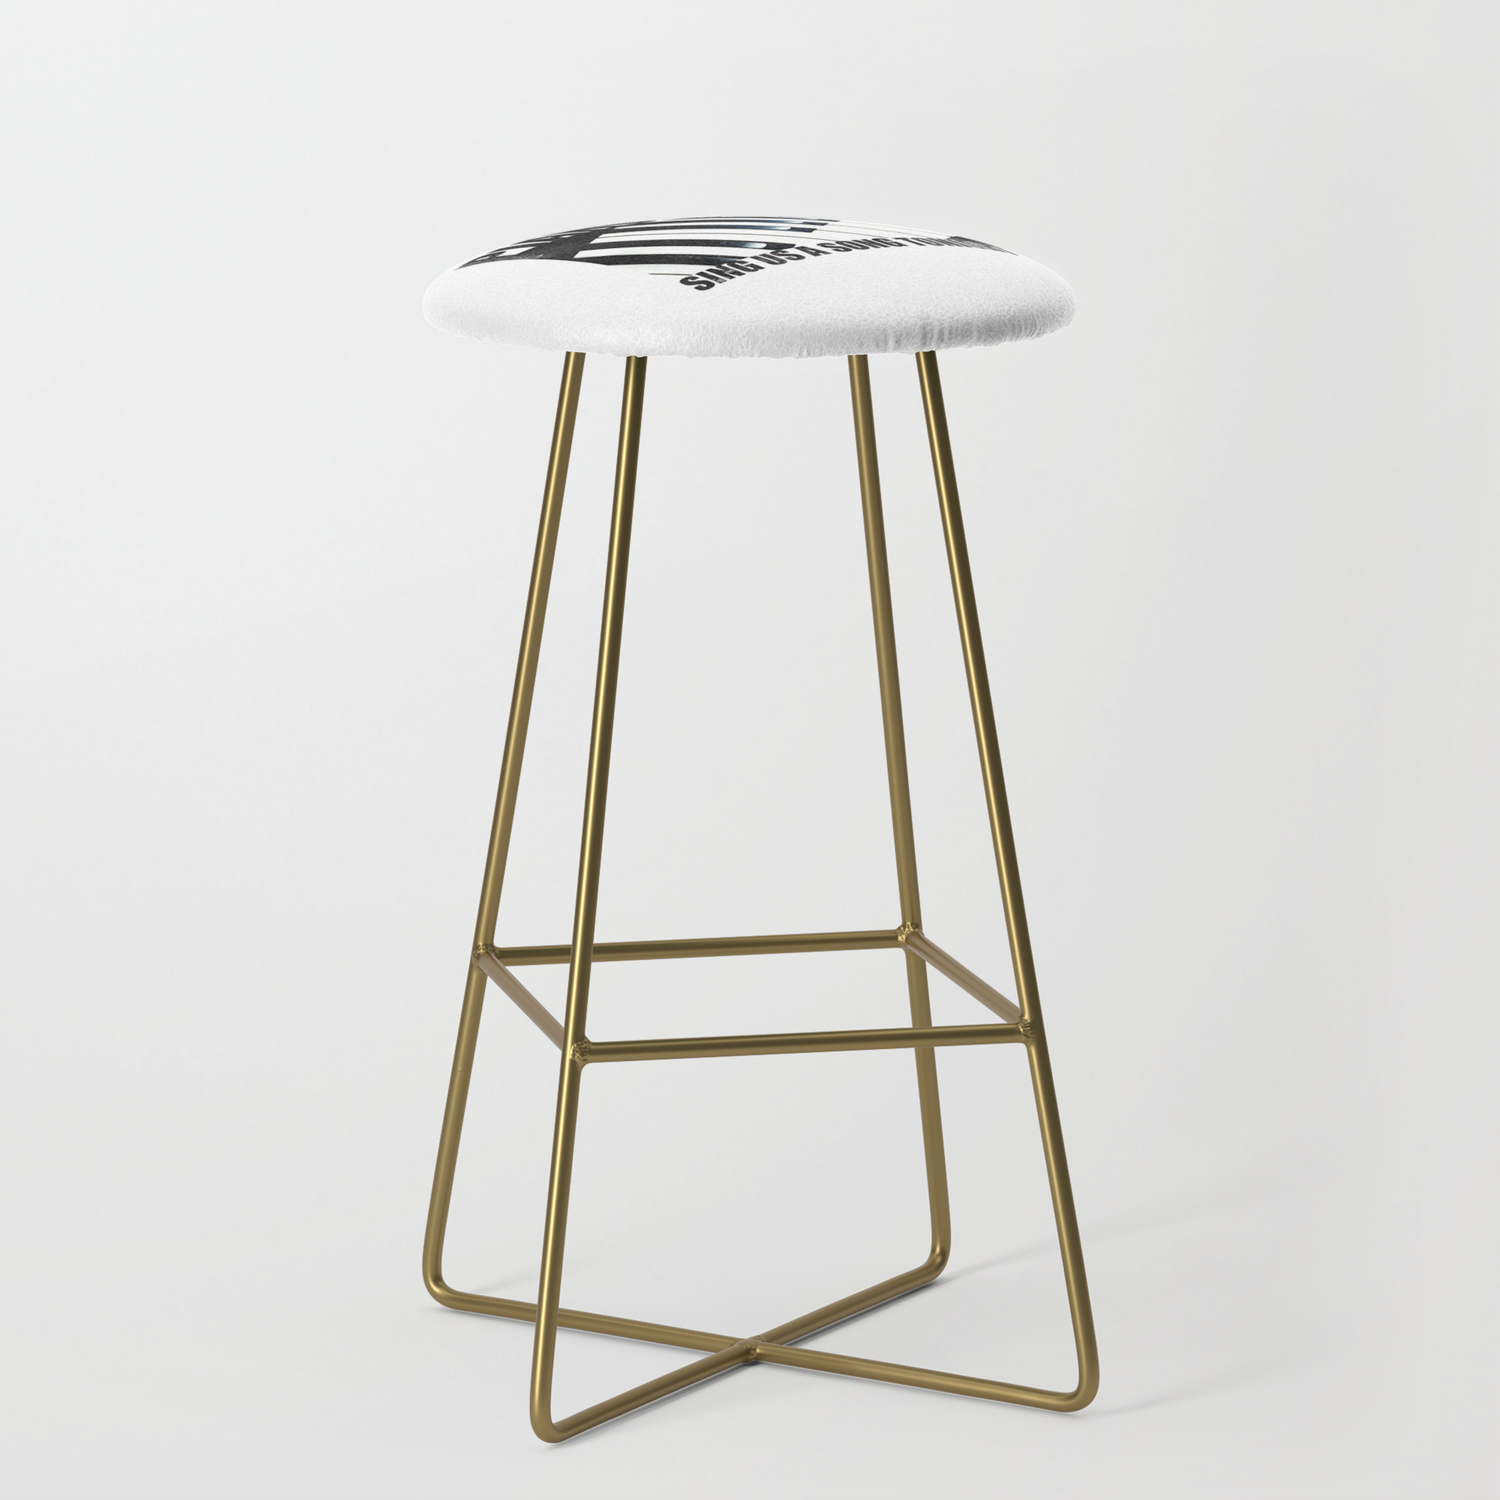 Details About Black Finish Saddle Style Bar Stool 24 Or 29 Tall Nfl Team Logo Decal Man Cave